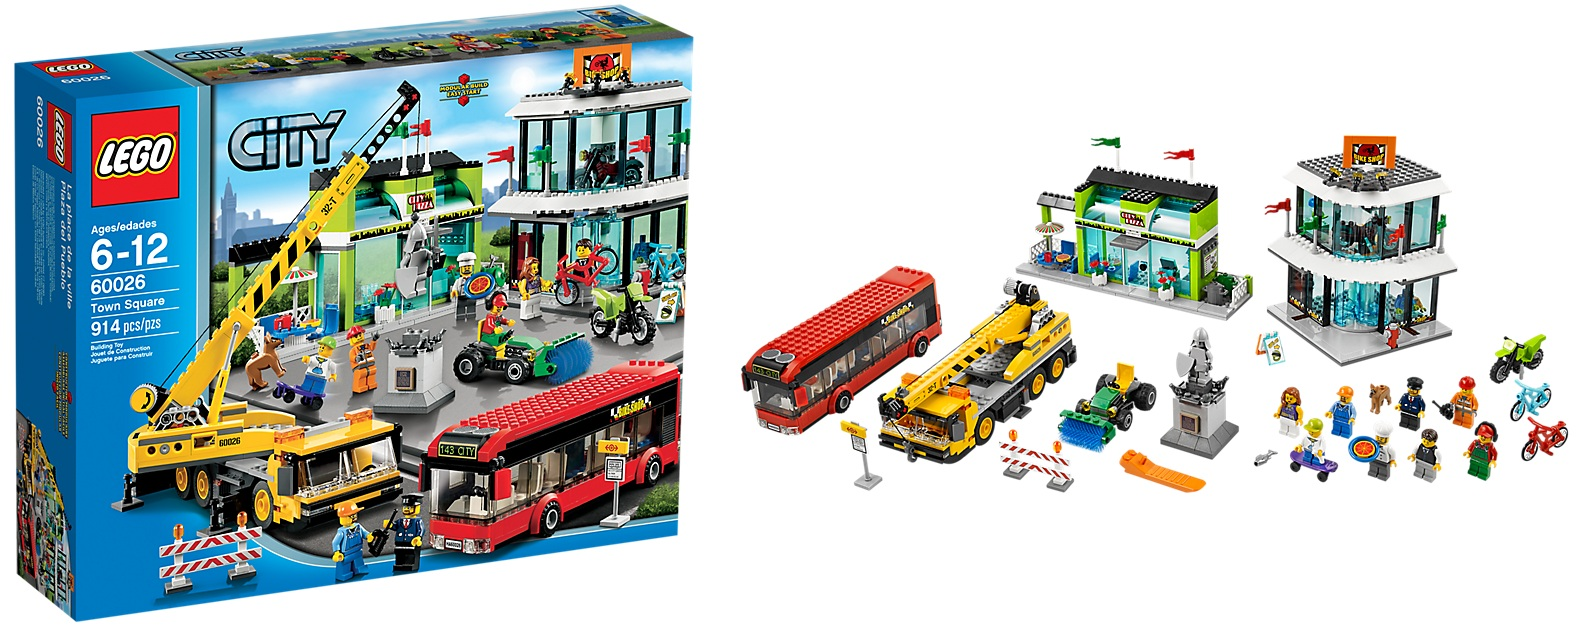 LEGO 60026 City Town Square   Toysnbricks